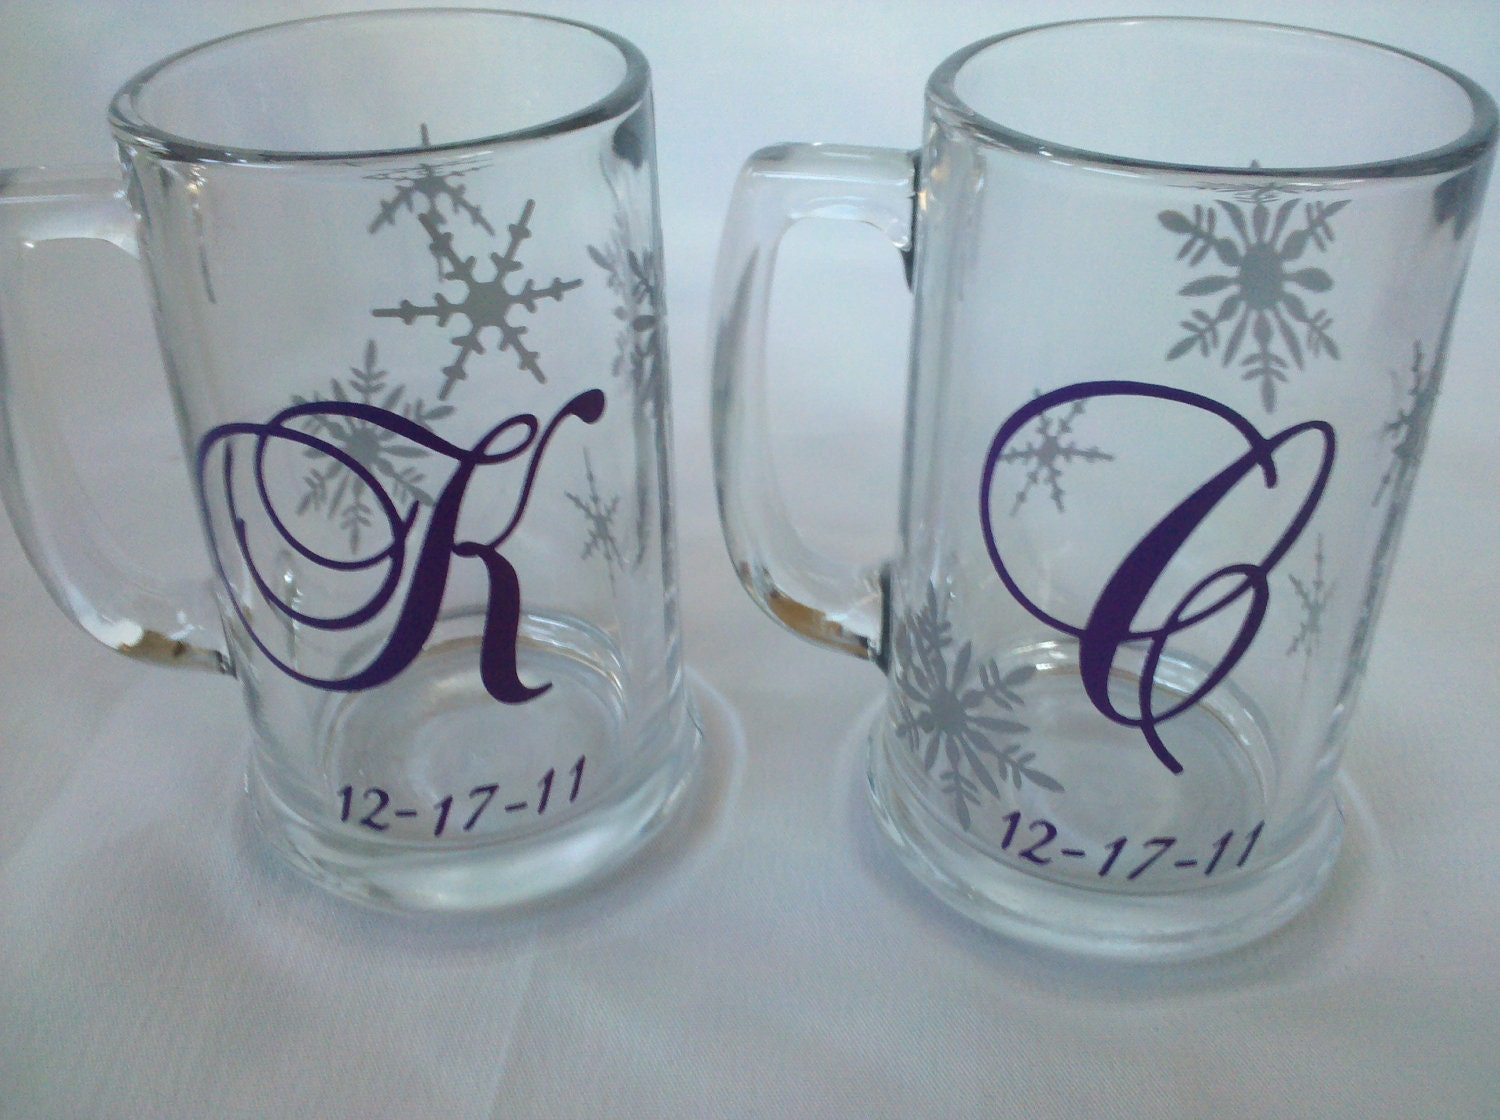 Wedding Gift Beer Mugs : Winter wedding snowflake mugs beer glasses 2 by WaterfallDesigns